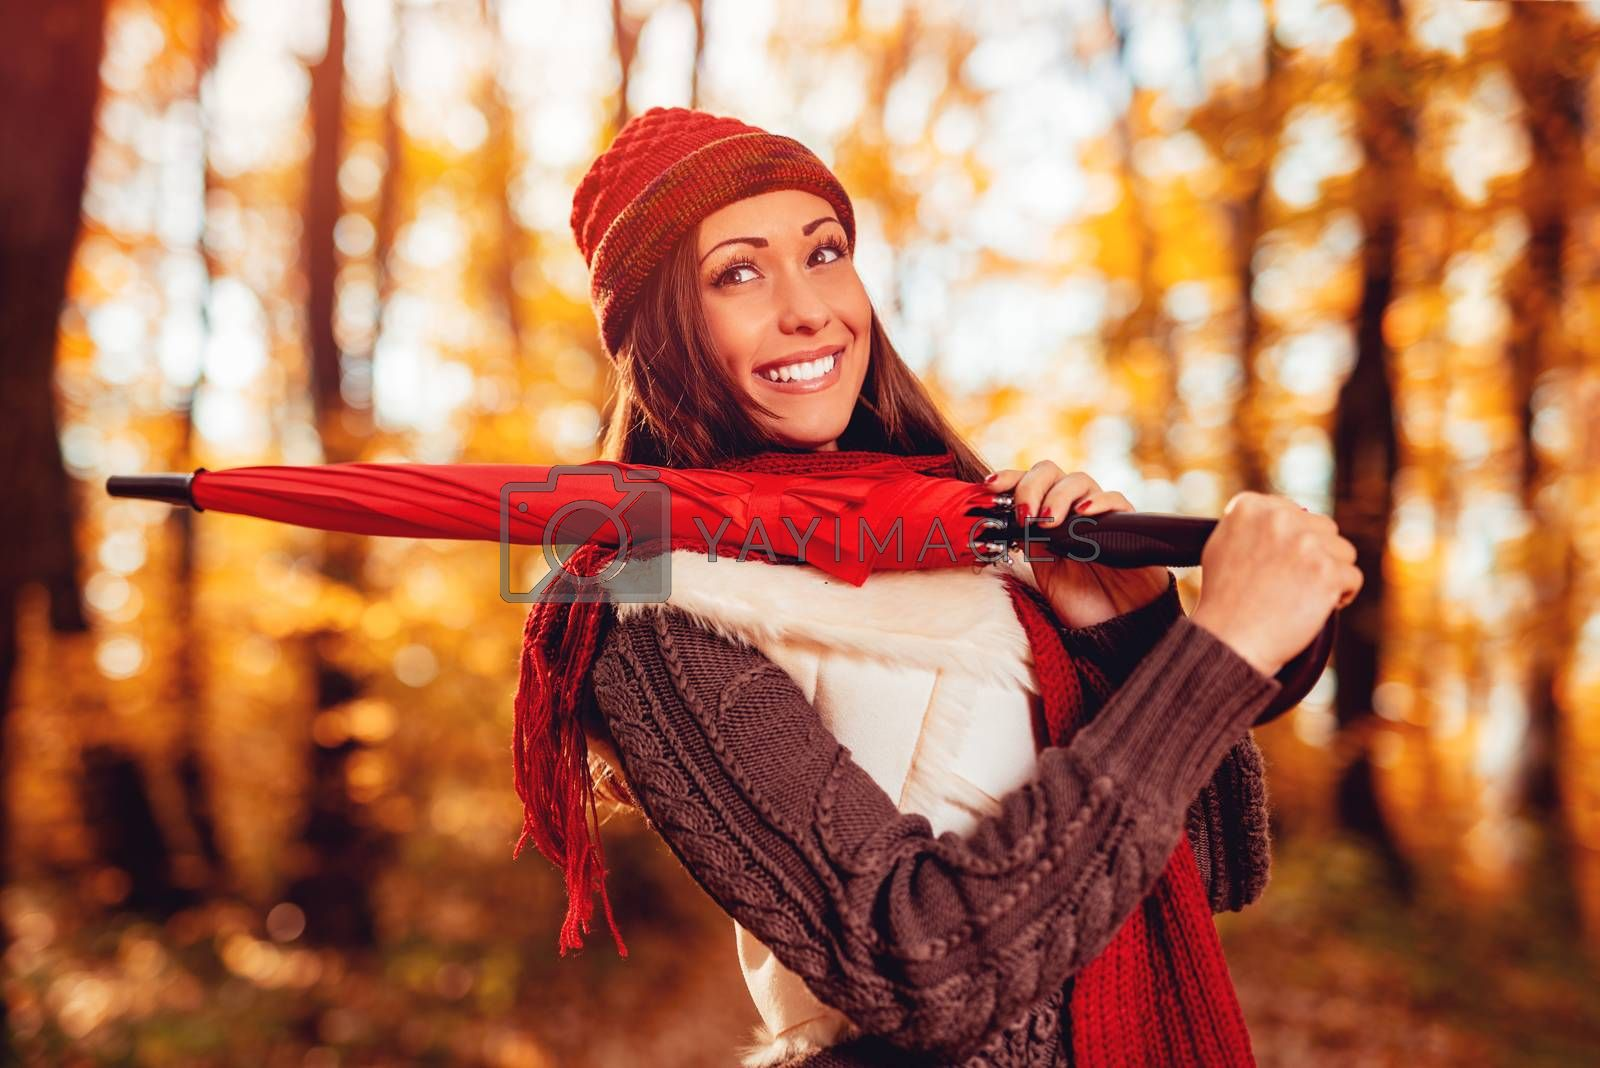 Portrait of a beautiful smiling girl with red umbrella in sunny forest in autumn colors. Pensive looking away.